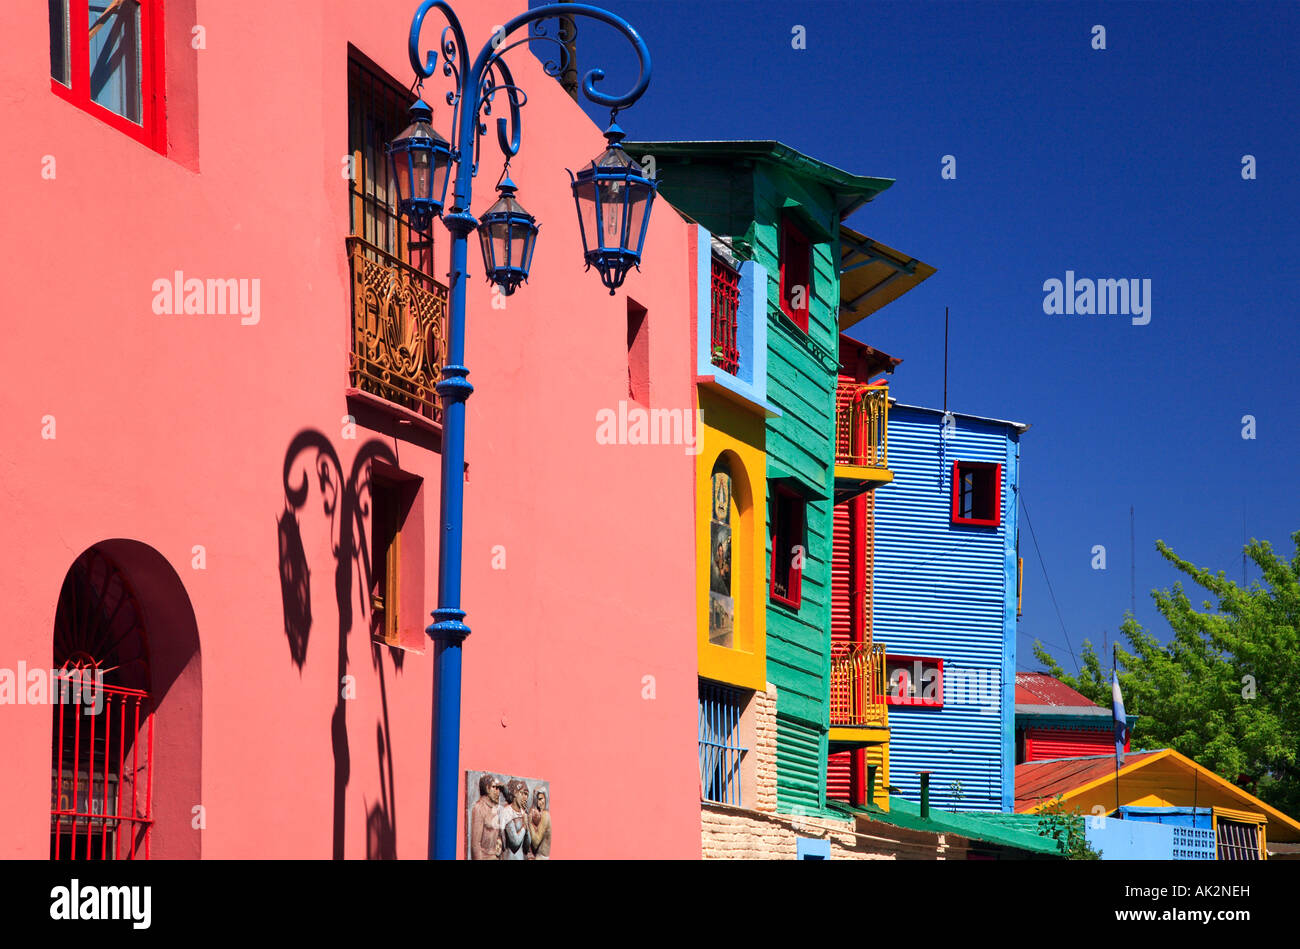 """""""Caminito street"""" lateral view, """"La Boca"""" Town, Buenos Aires, Argentina. - Stock Image"""